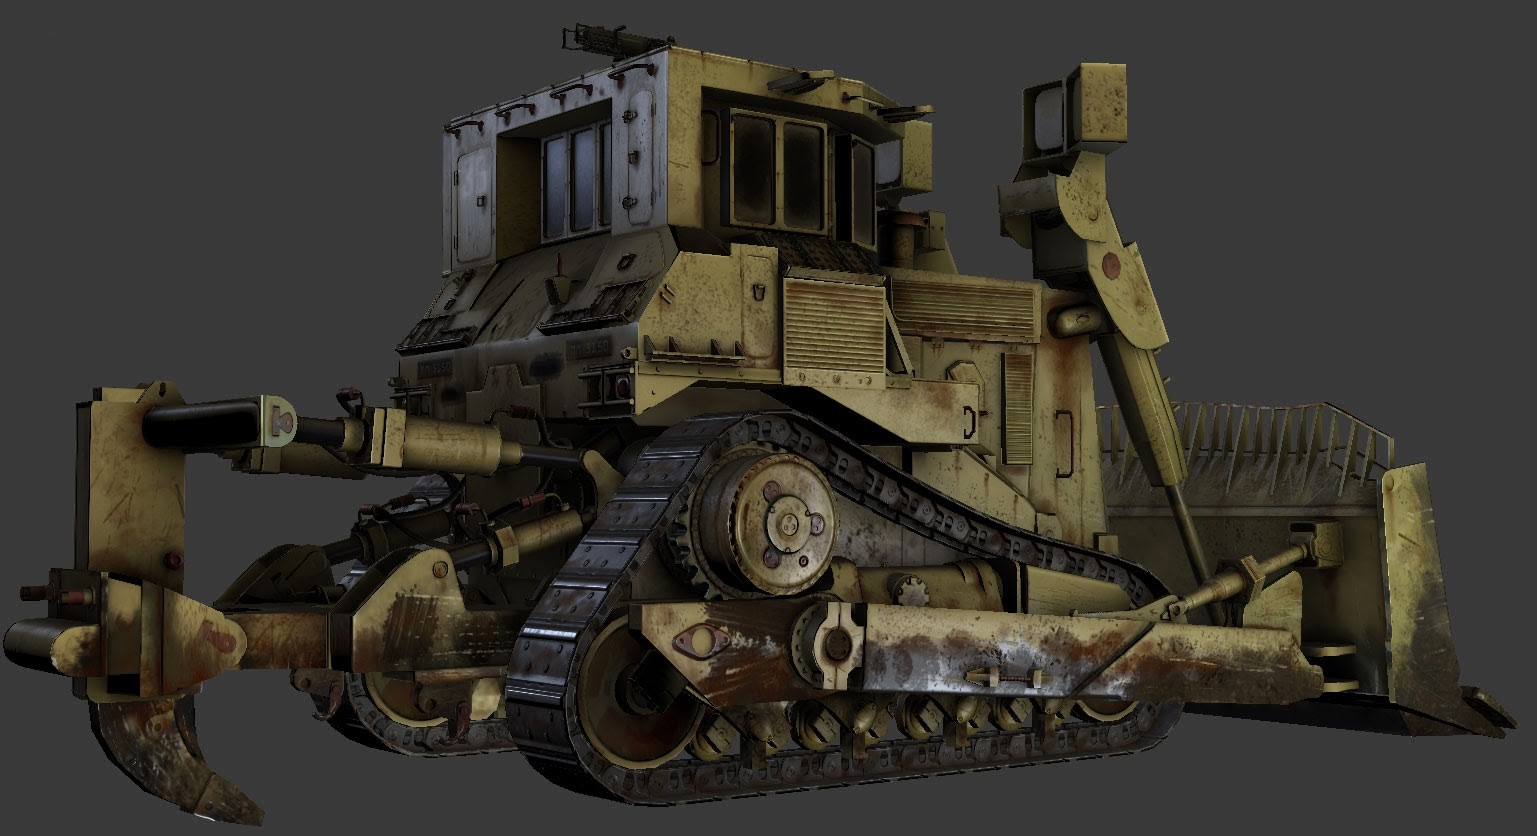 Render of textured low-poly model as shown in 3DSMax viewport using Xoliul Shader (developed by Laurens Corjin)